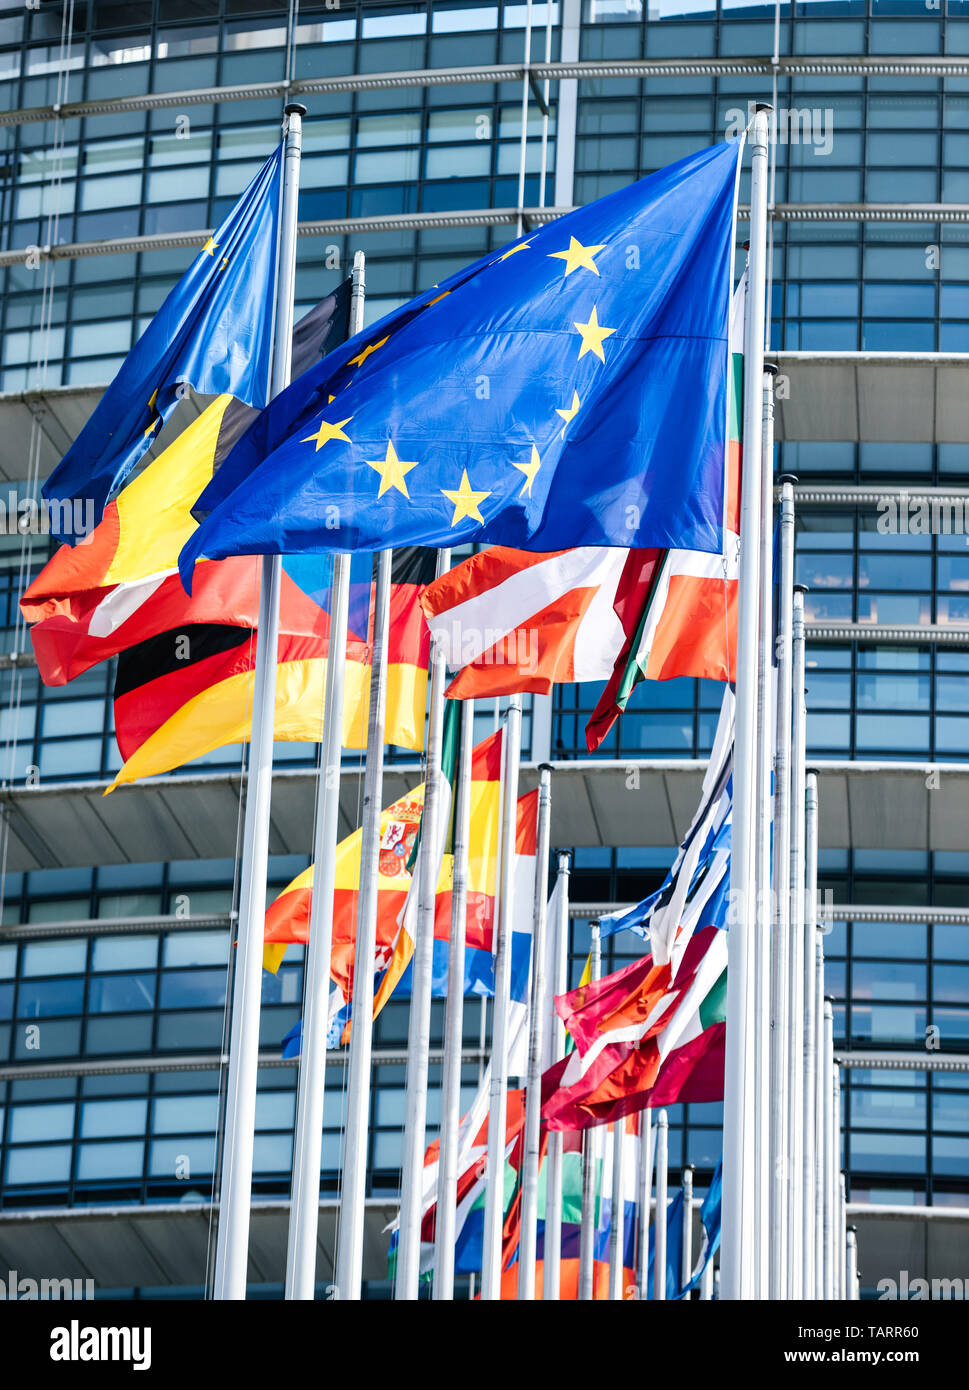 Clean flags of all member states of the European Union waving in calm wind in front of the Parliament headquarter on the day of 2019 European Parliament election. - Stock Image